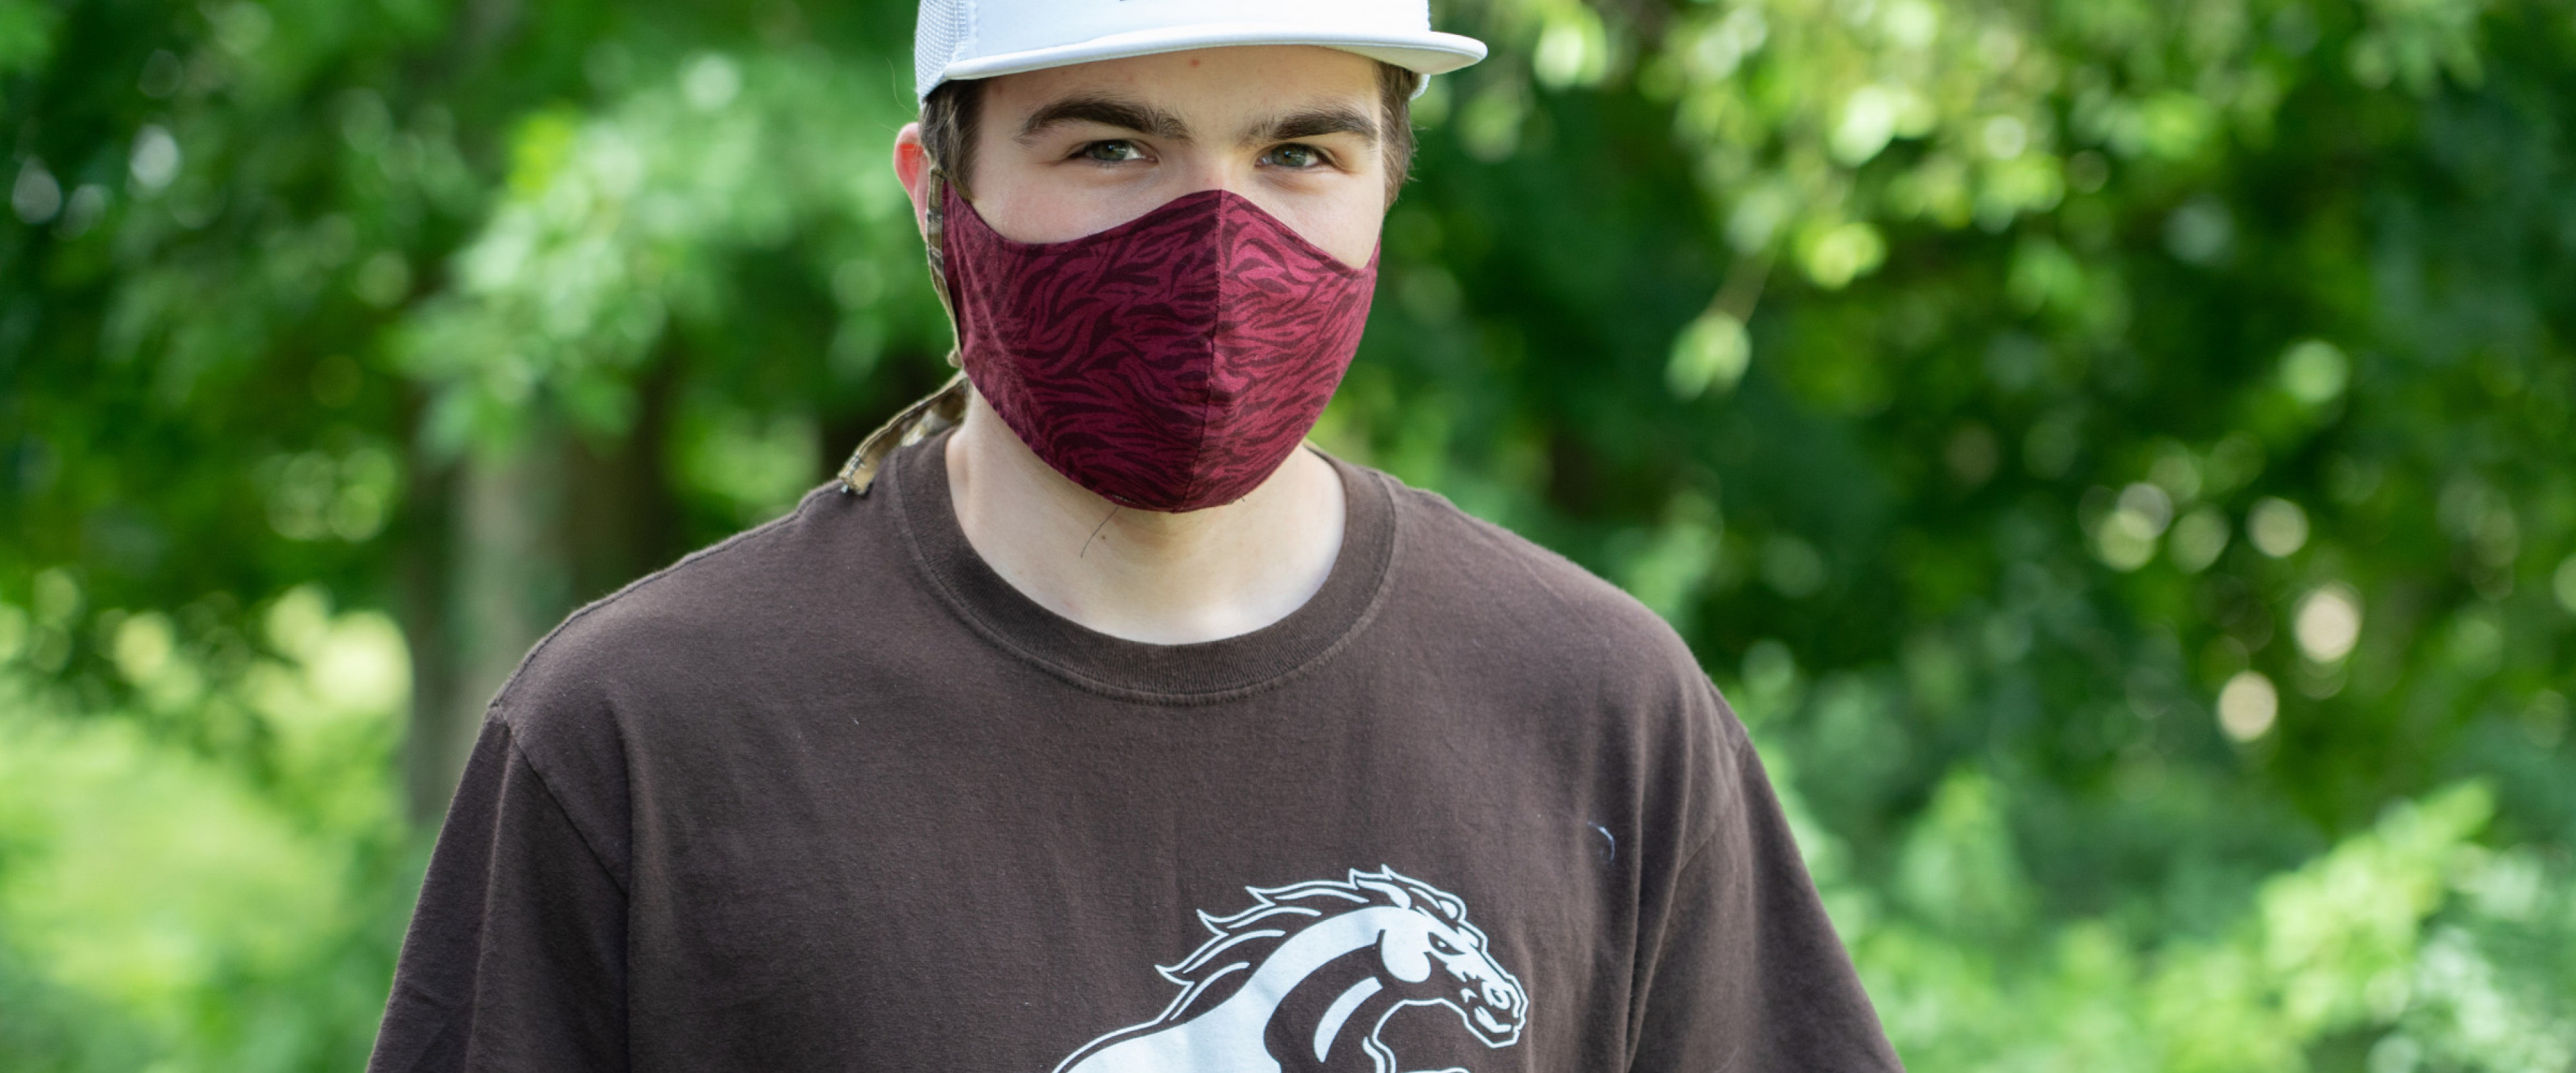 Pictured is student wearing face mask